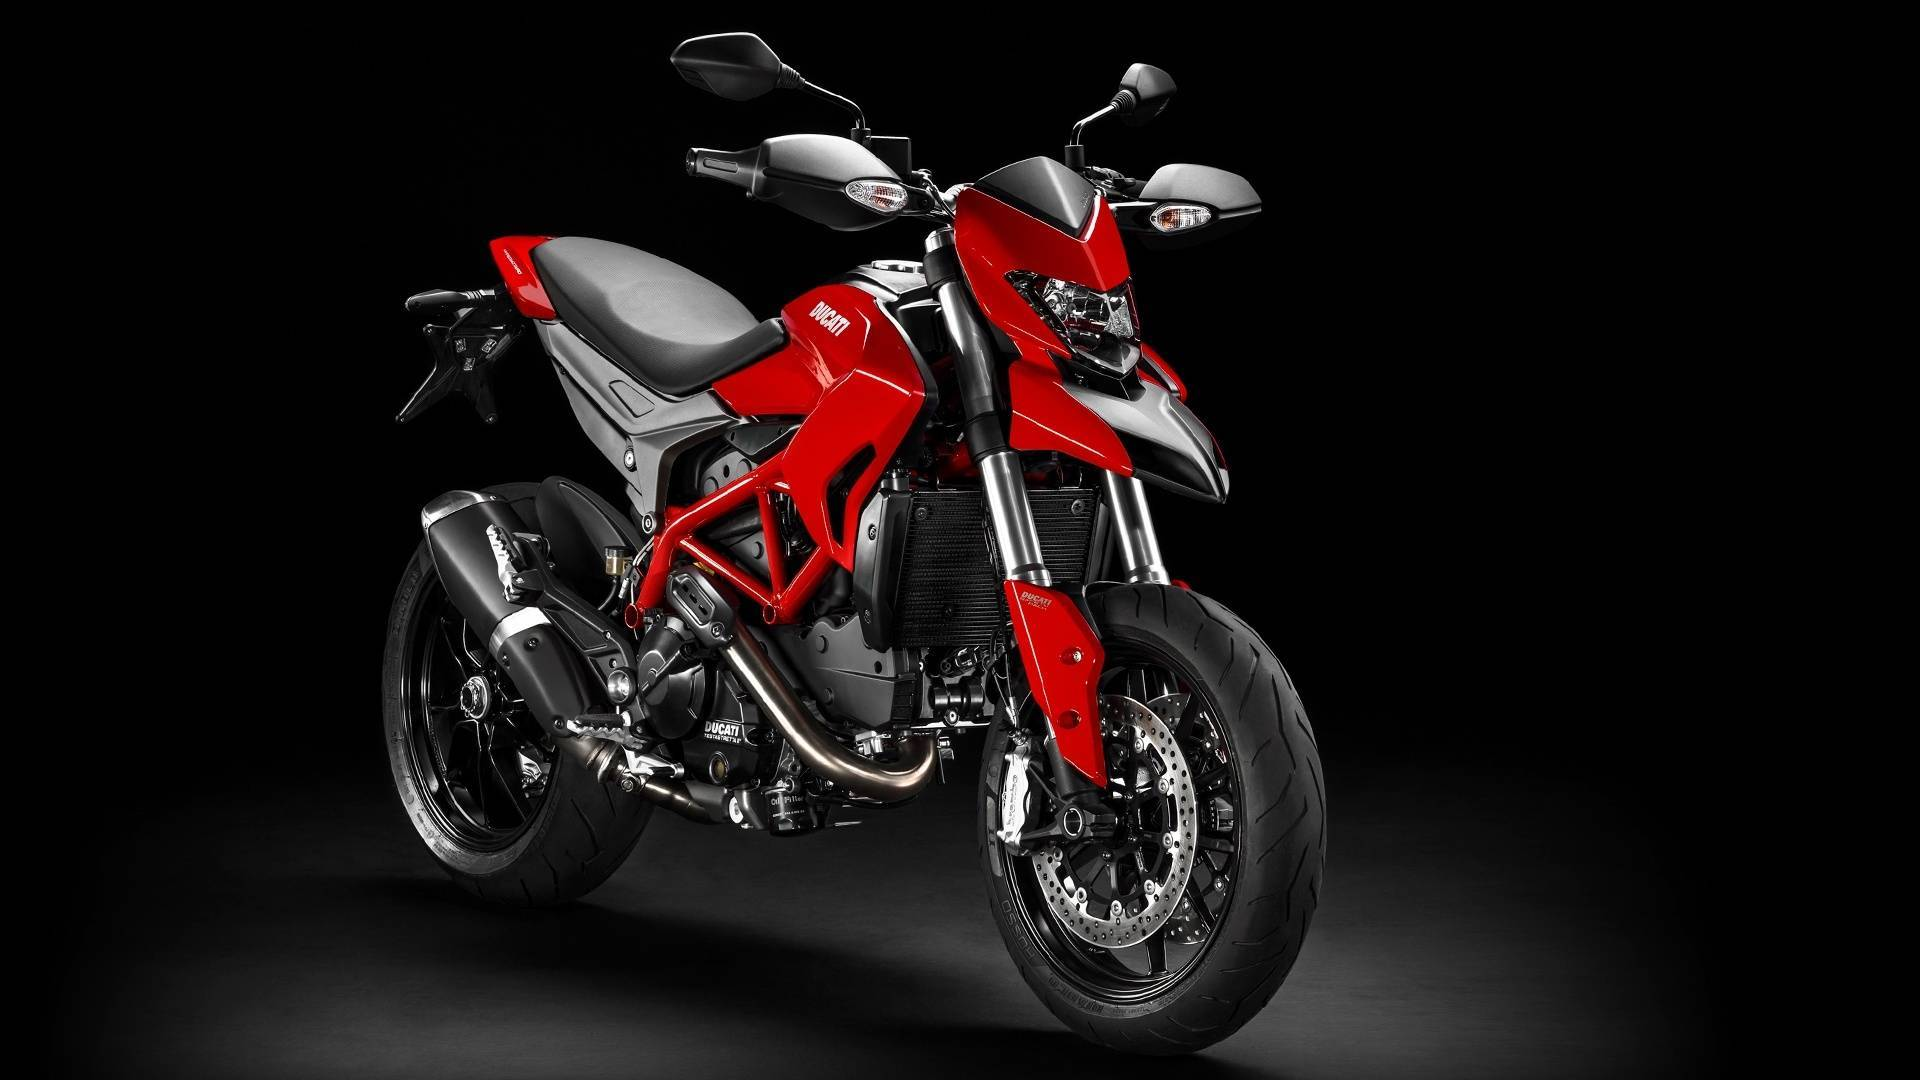 ducati bikes prices (gst rates), models, ducati new bikes in india